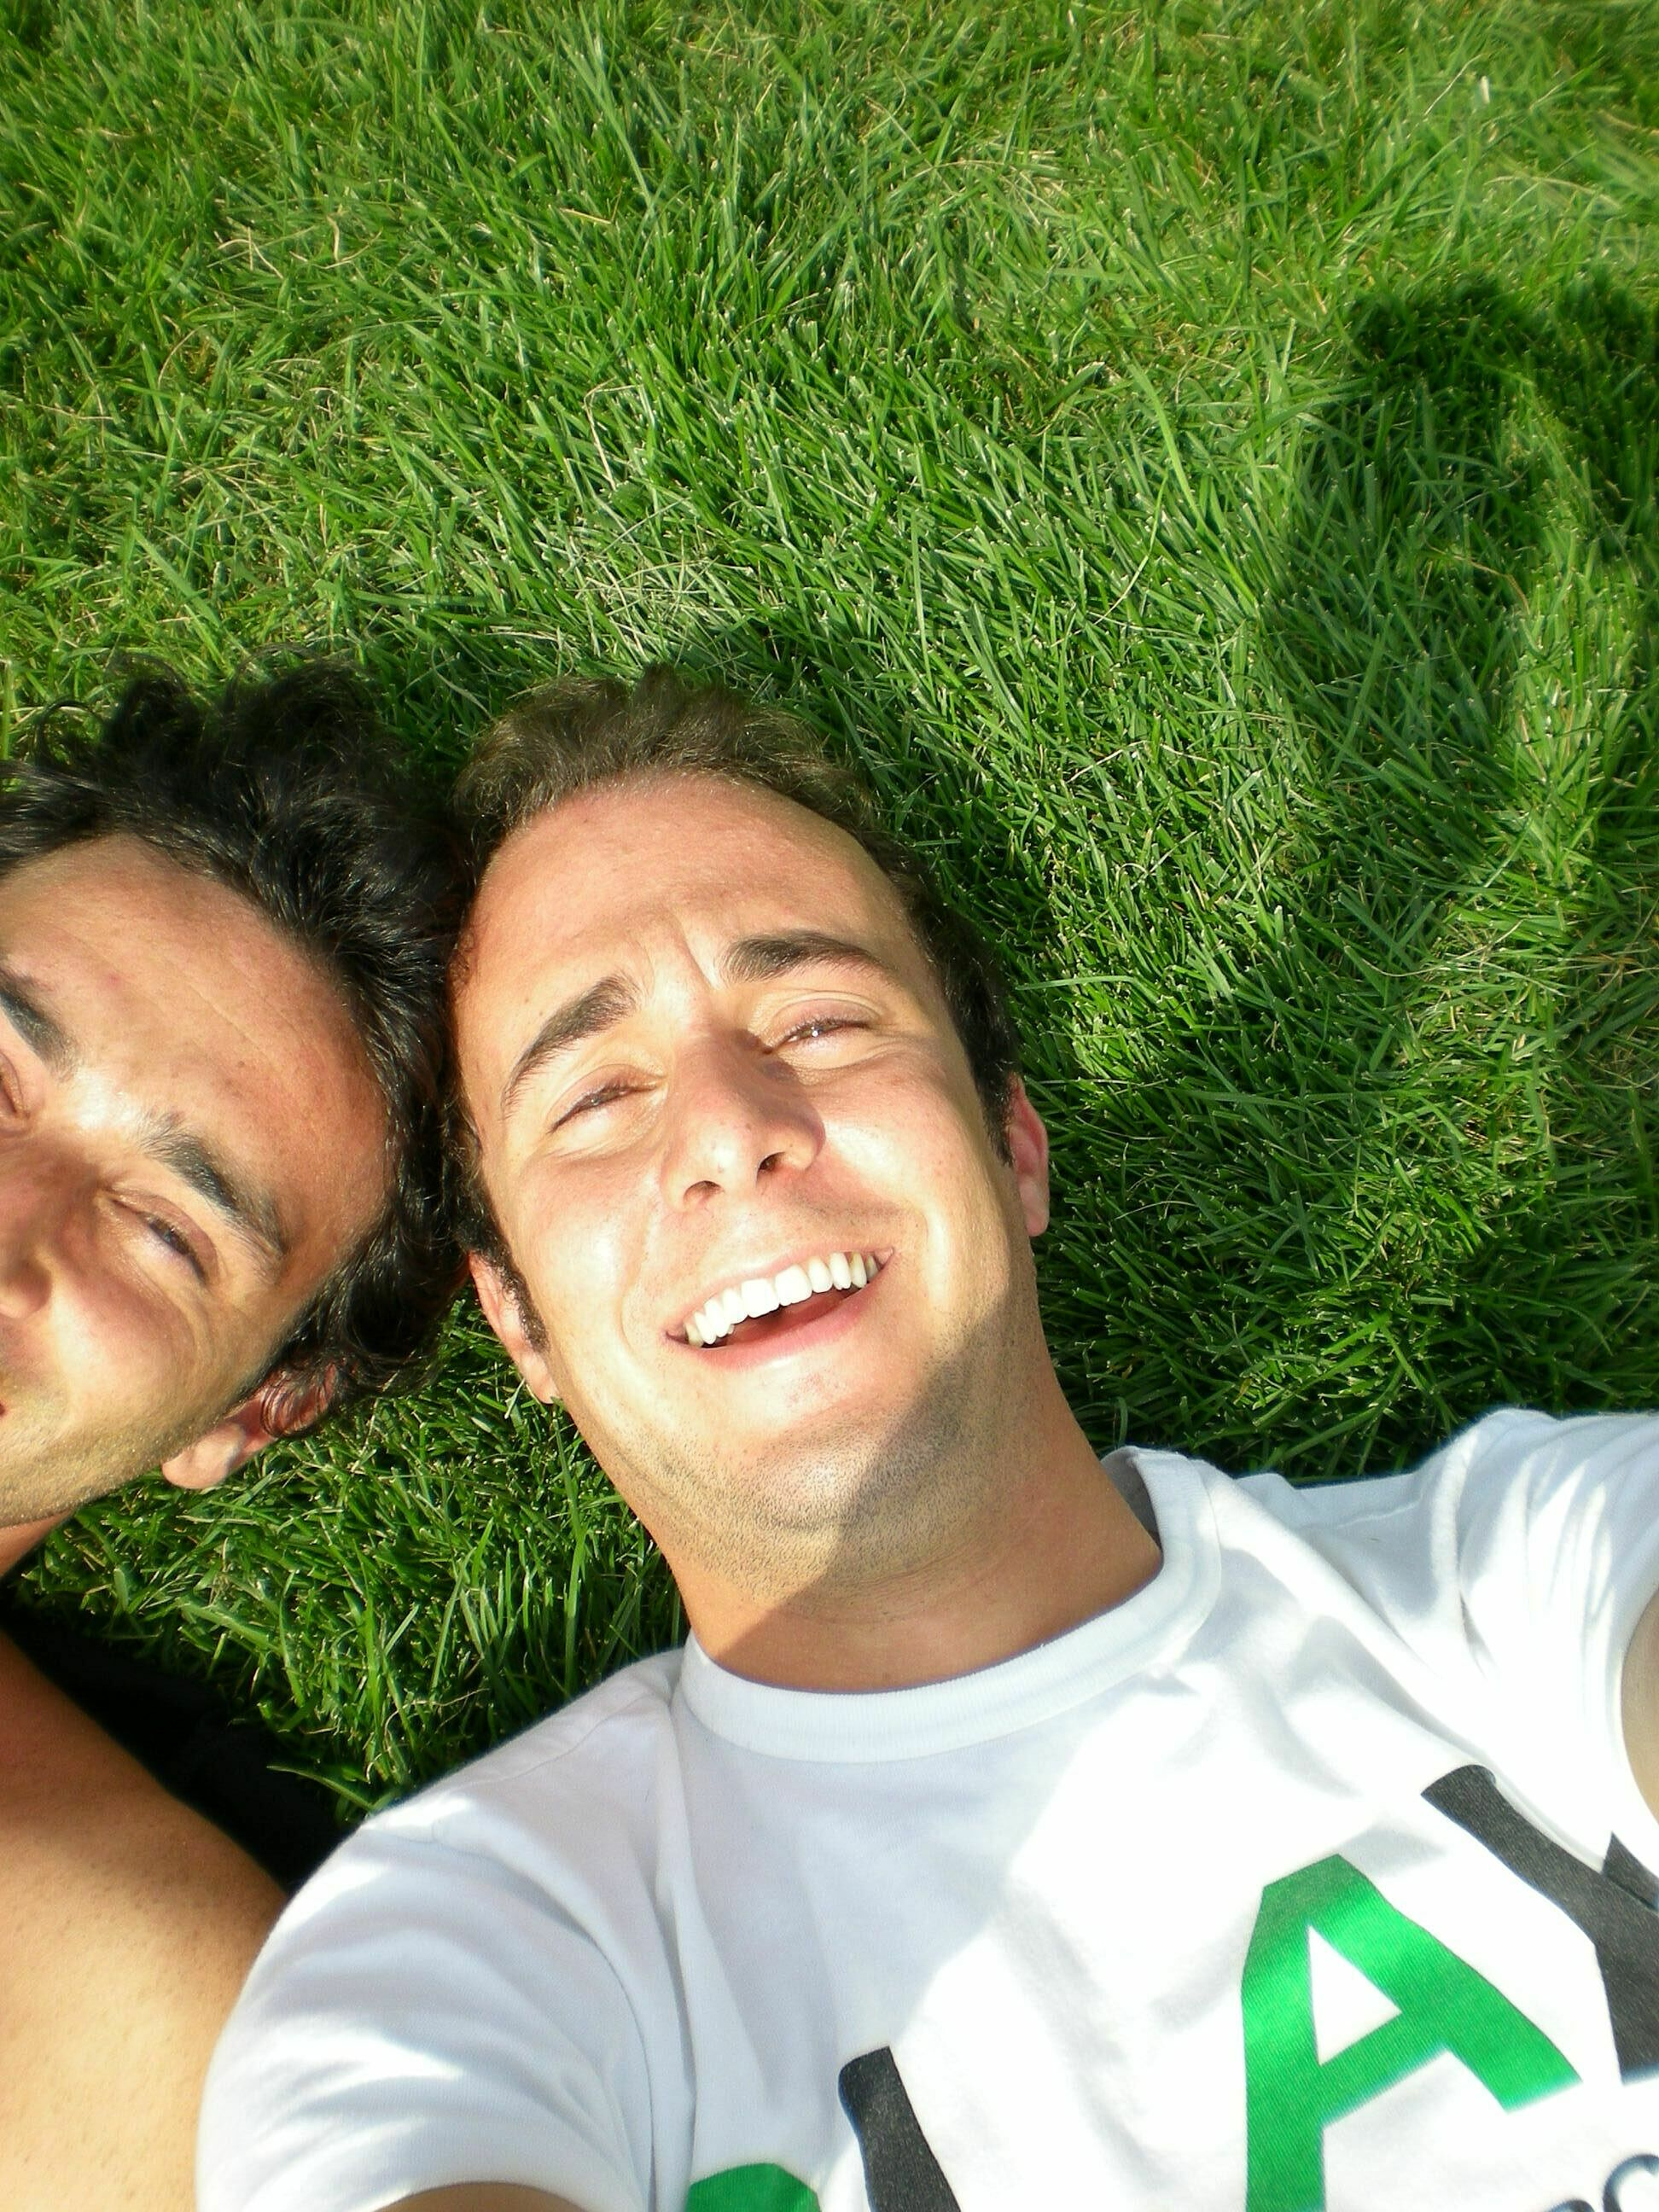 Photograph of a man and a friend taking a selfie in the grass.